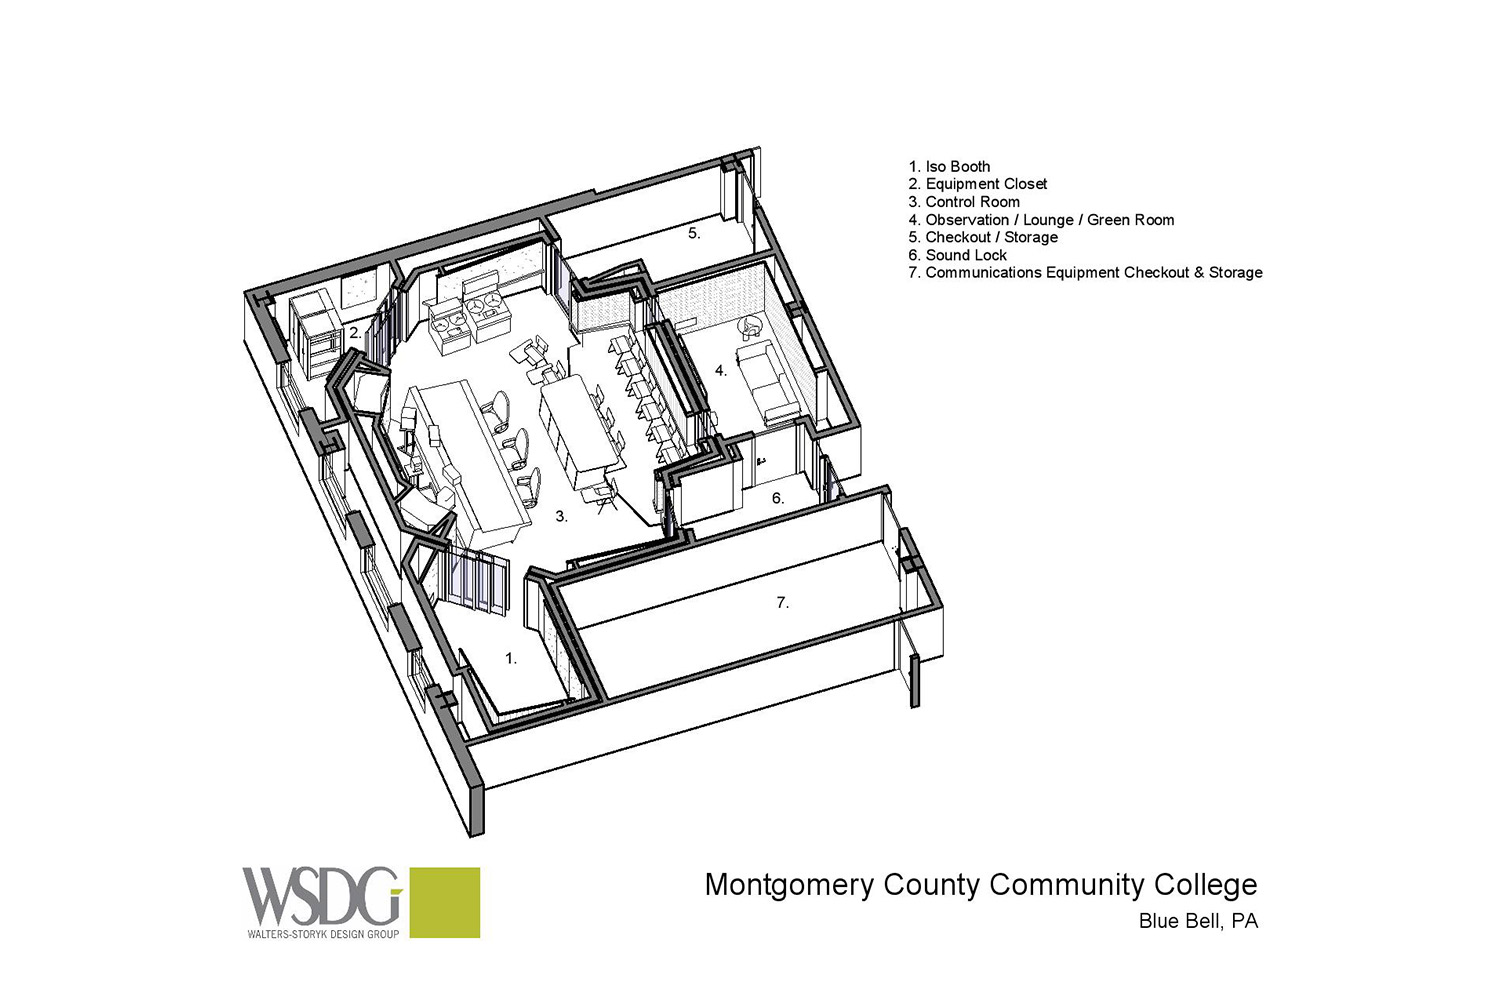 Montgomery County Community College in Blue Bell, PA brand-new Recording Studio for their Digital Music Technology course. Designed by WSDG. Architectural acoustics and media systems engineering. Presentation Drawing